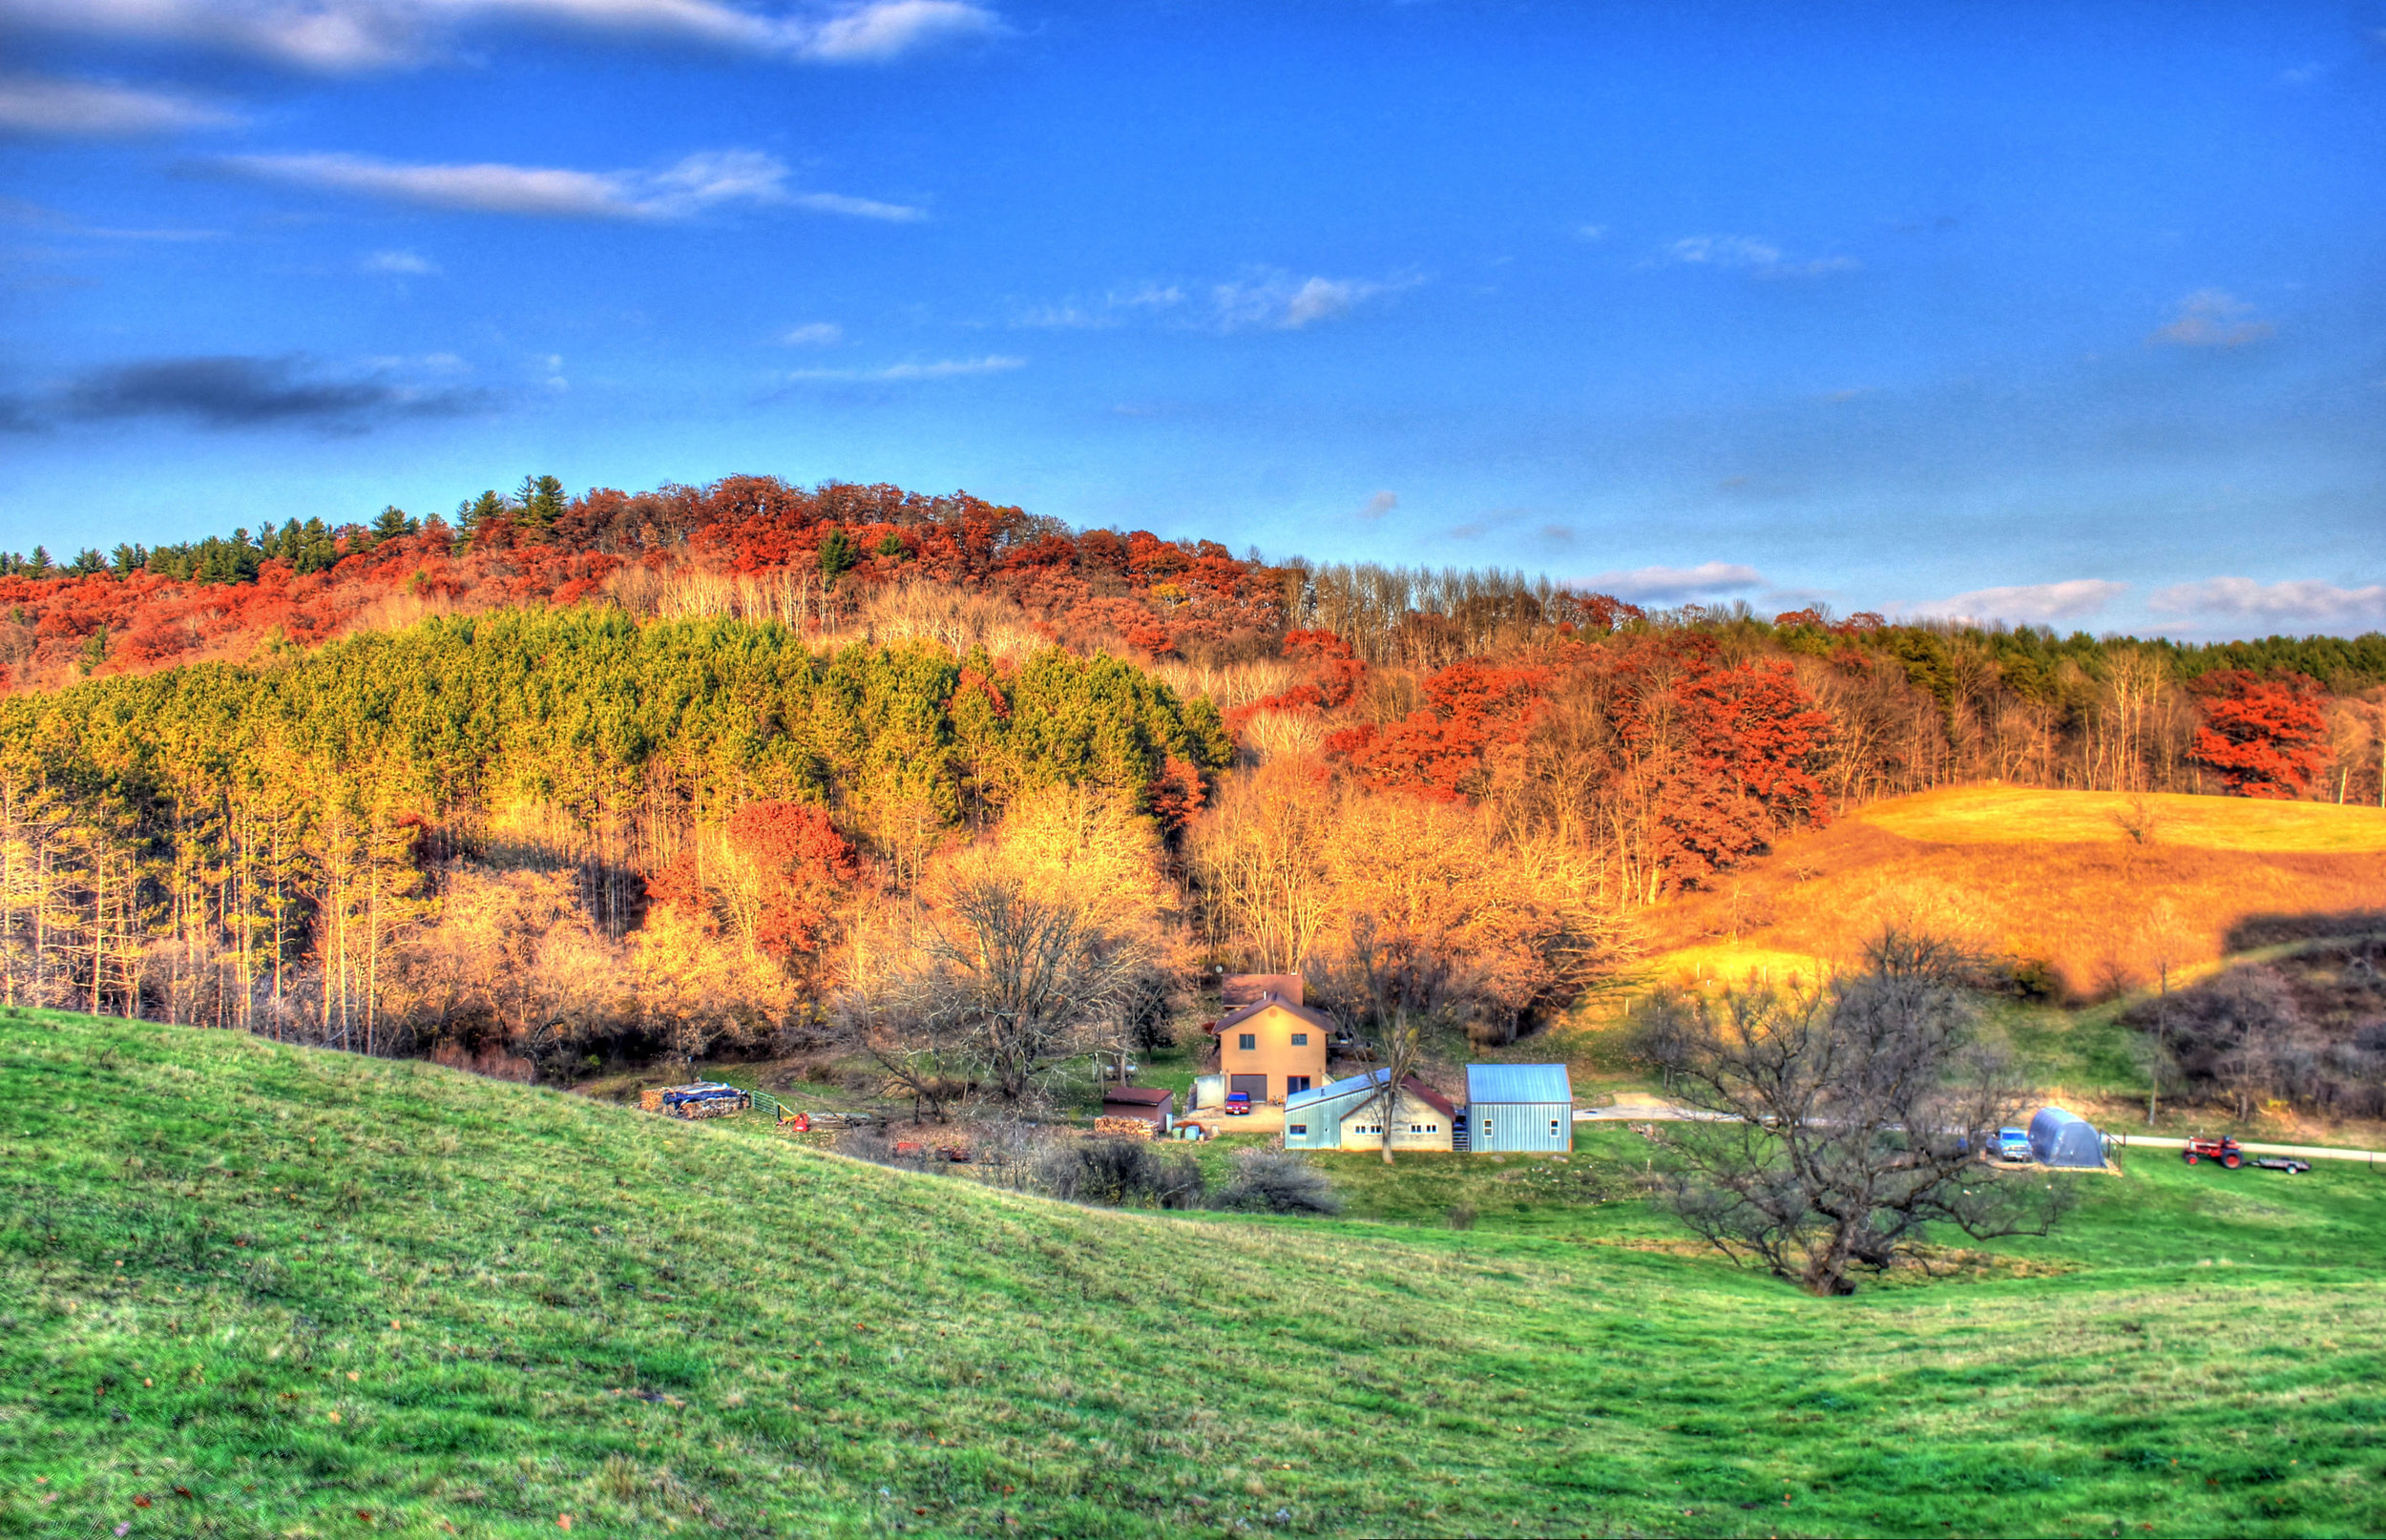 wisconsin-wildcat-mountain-farmhouse-and-hills.jpg